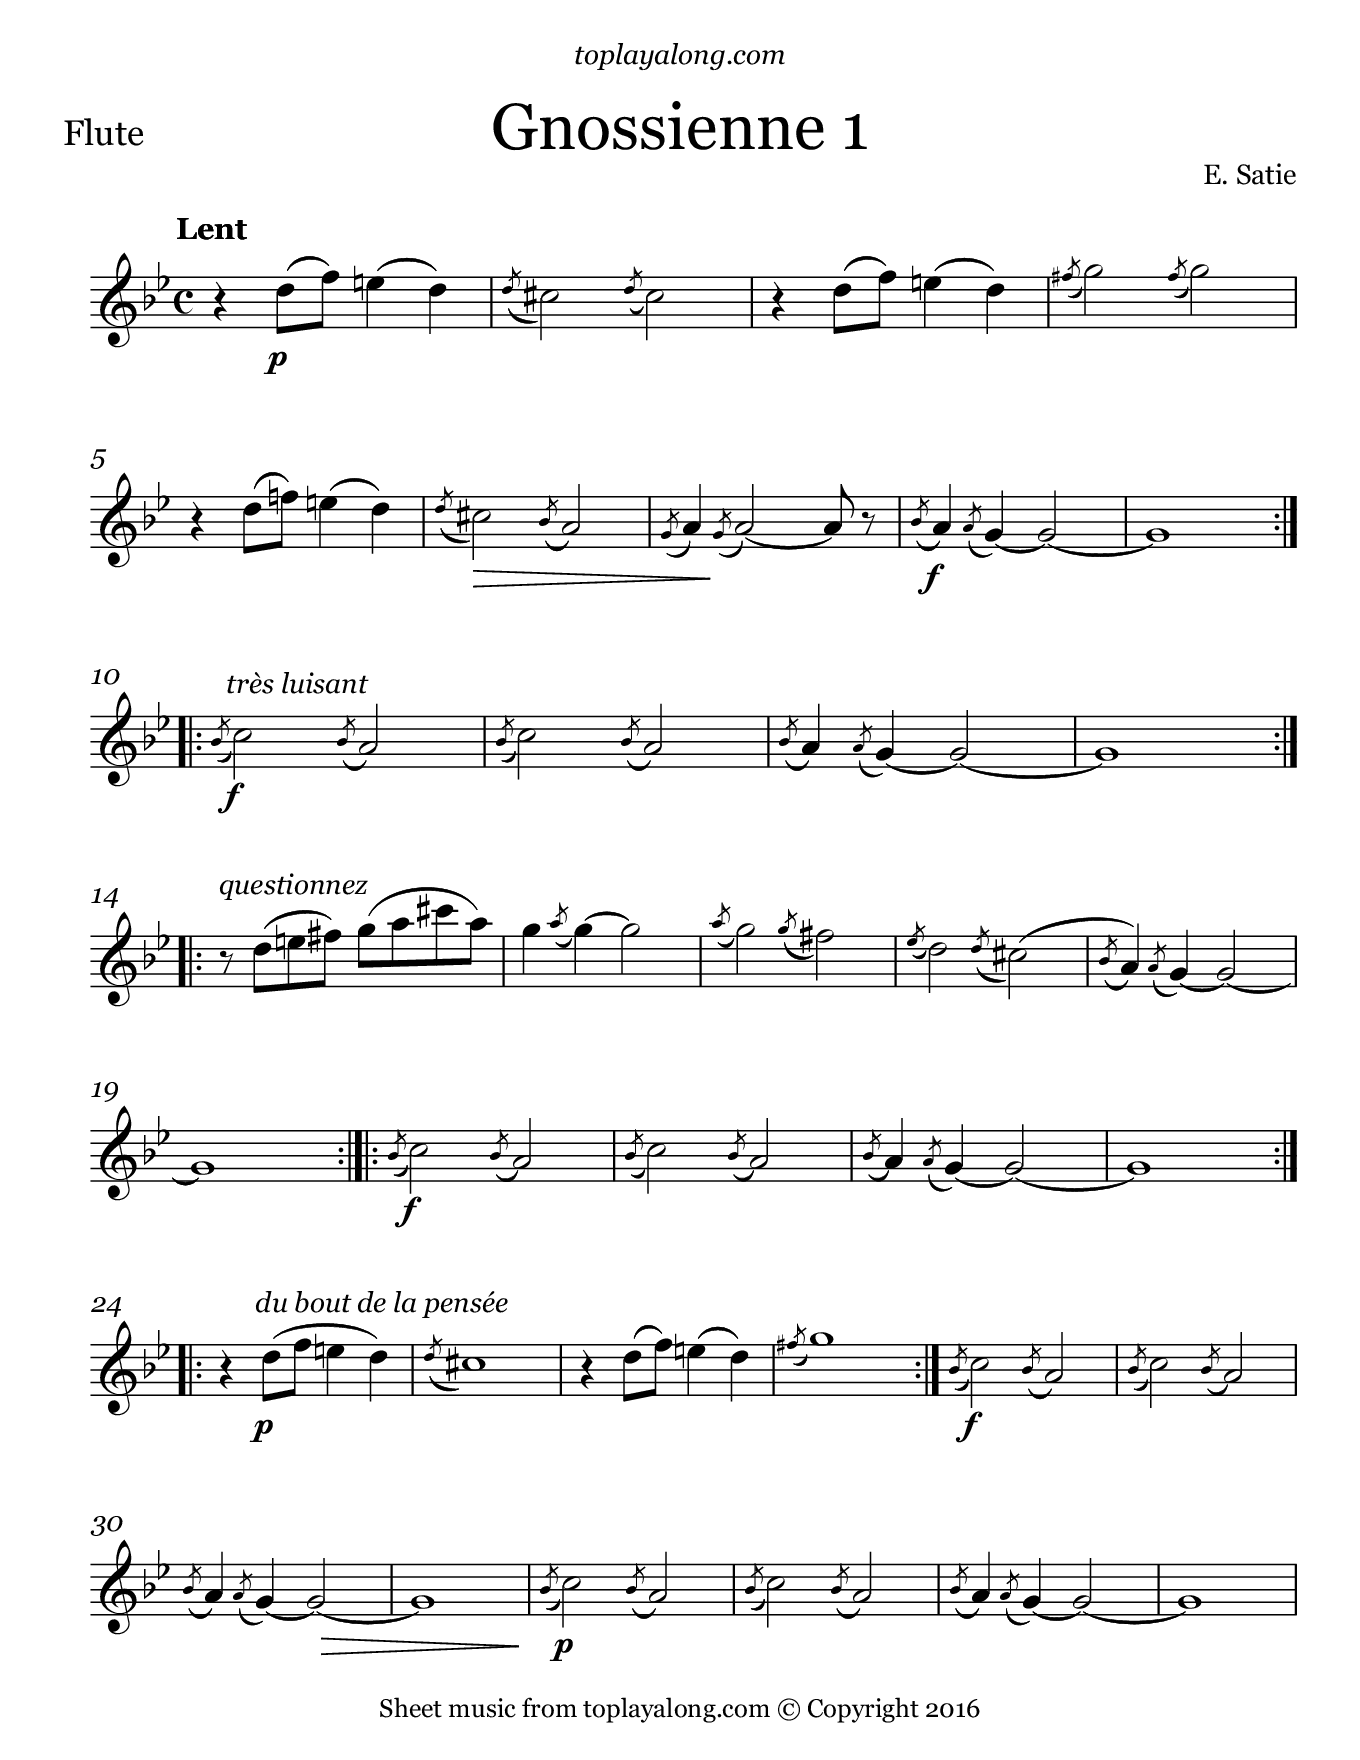 Gnossienne No. 1 by Satie. Sheet music for Flute, page 1.